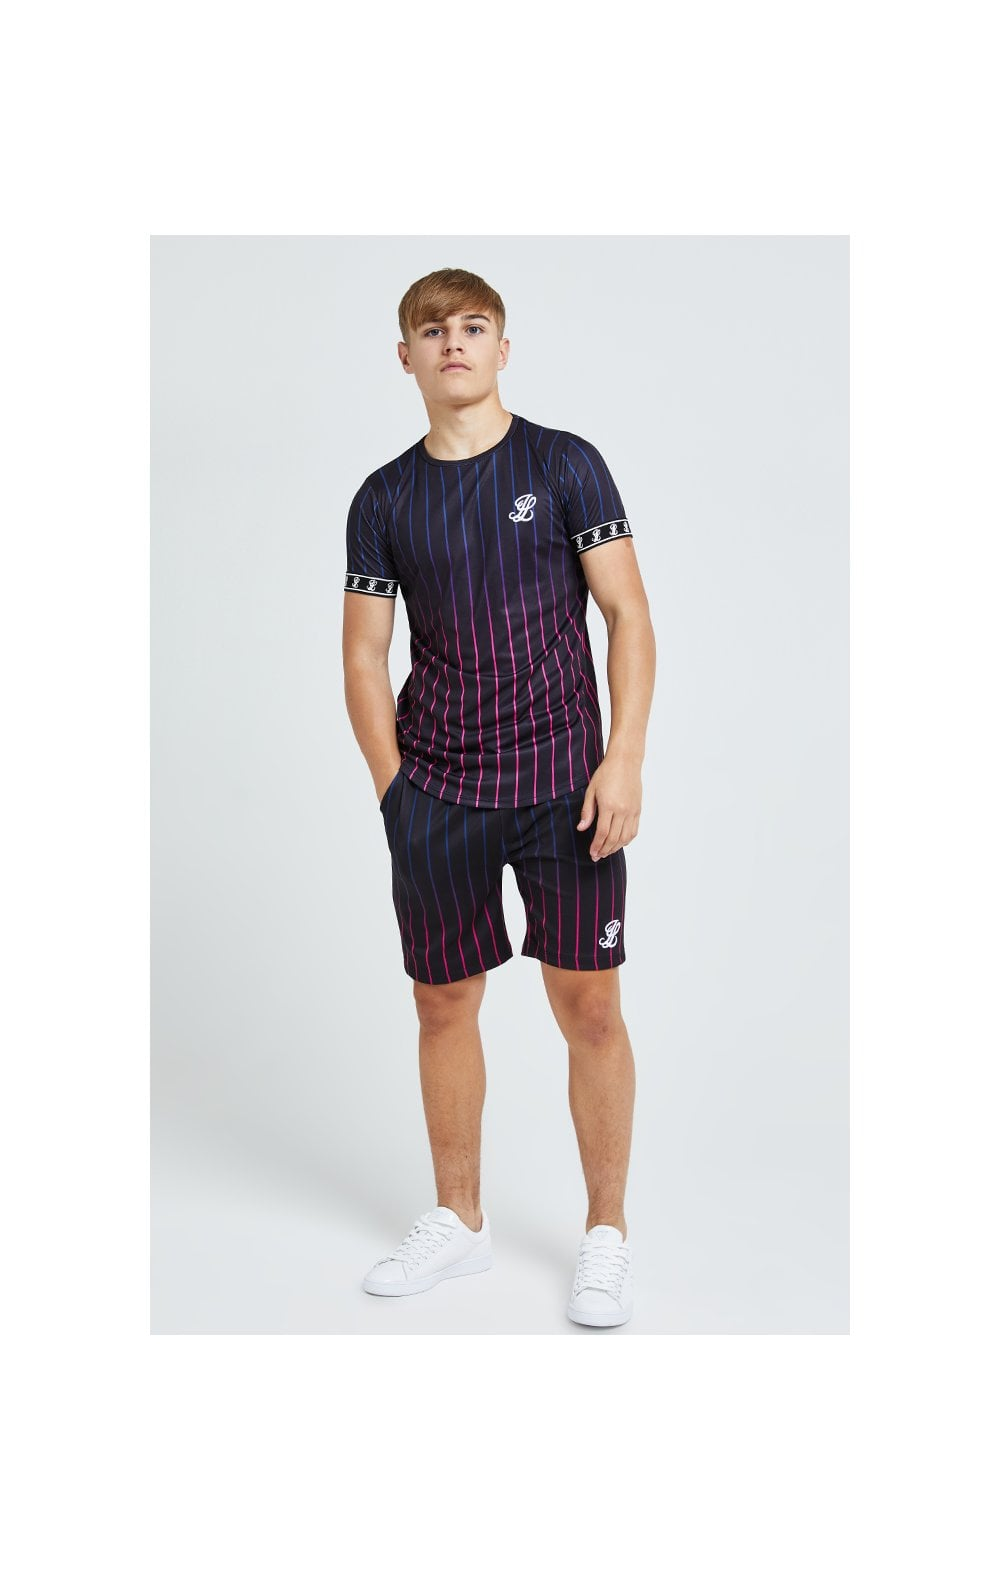 Illusive London Fade Stripe Shorts - Black (4)